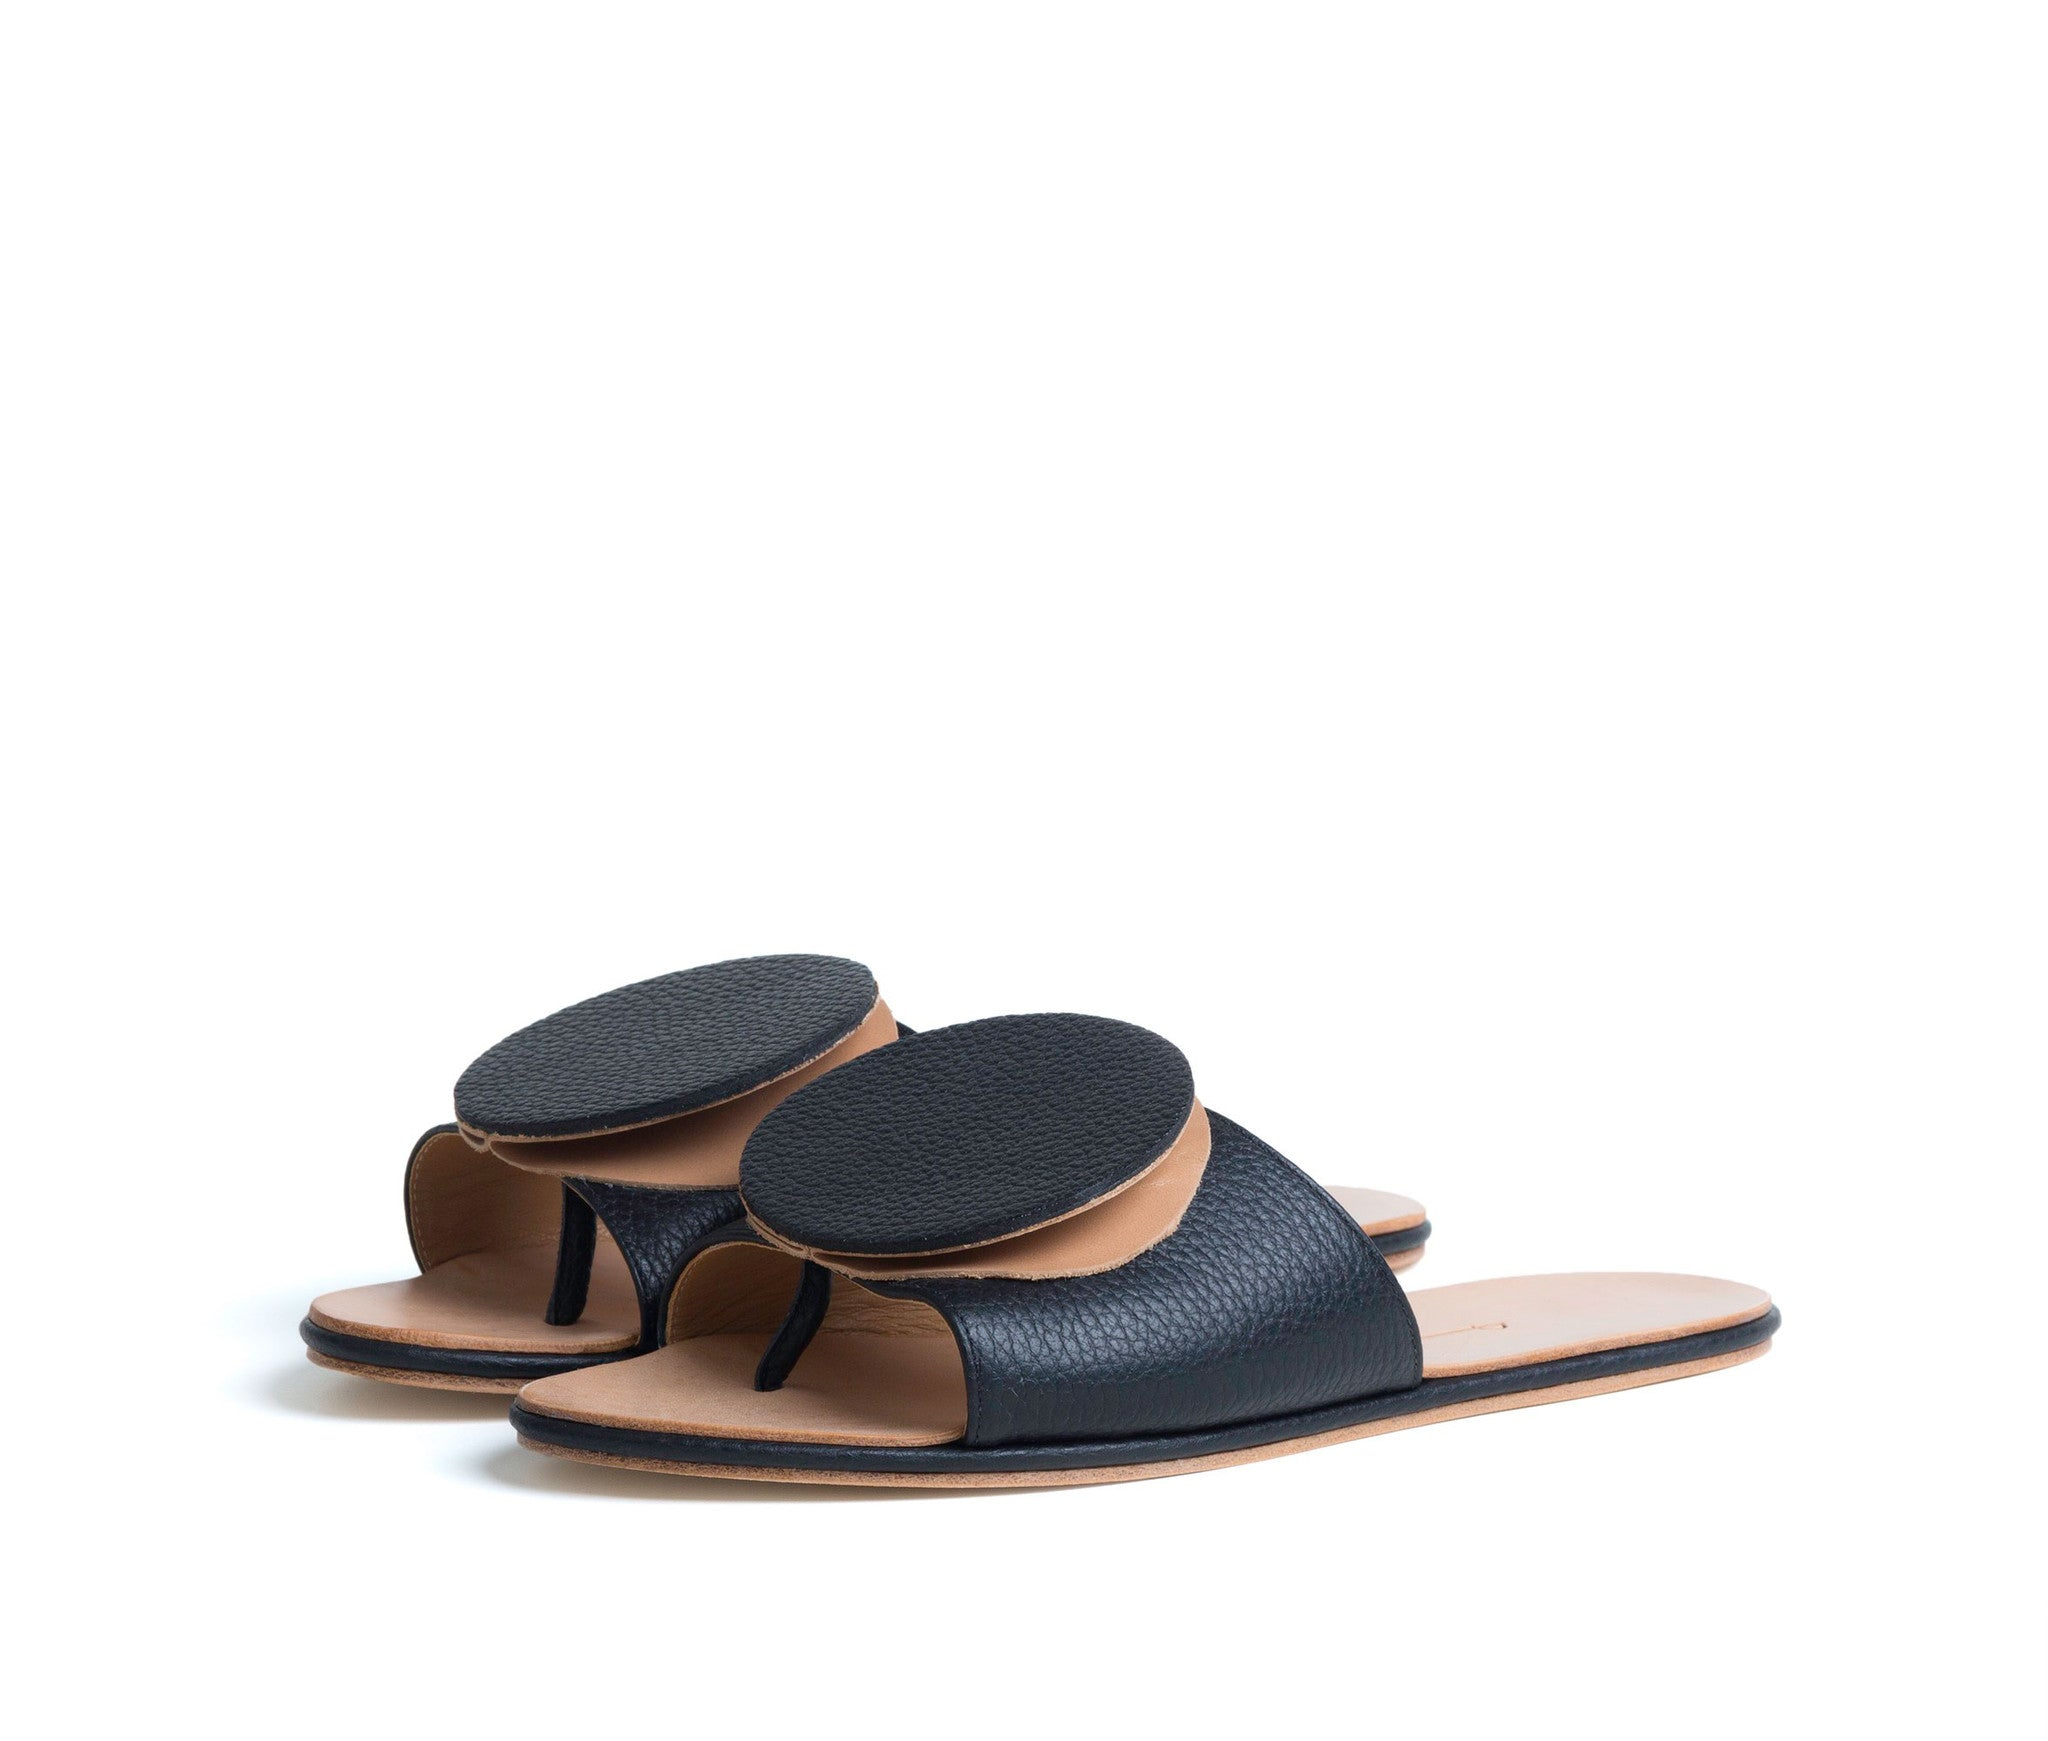 caeleste slide sandal - black pebbled / tan smooth leather